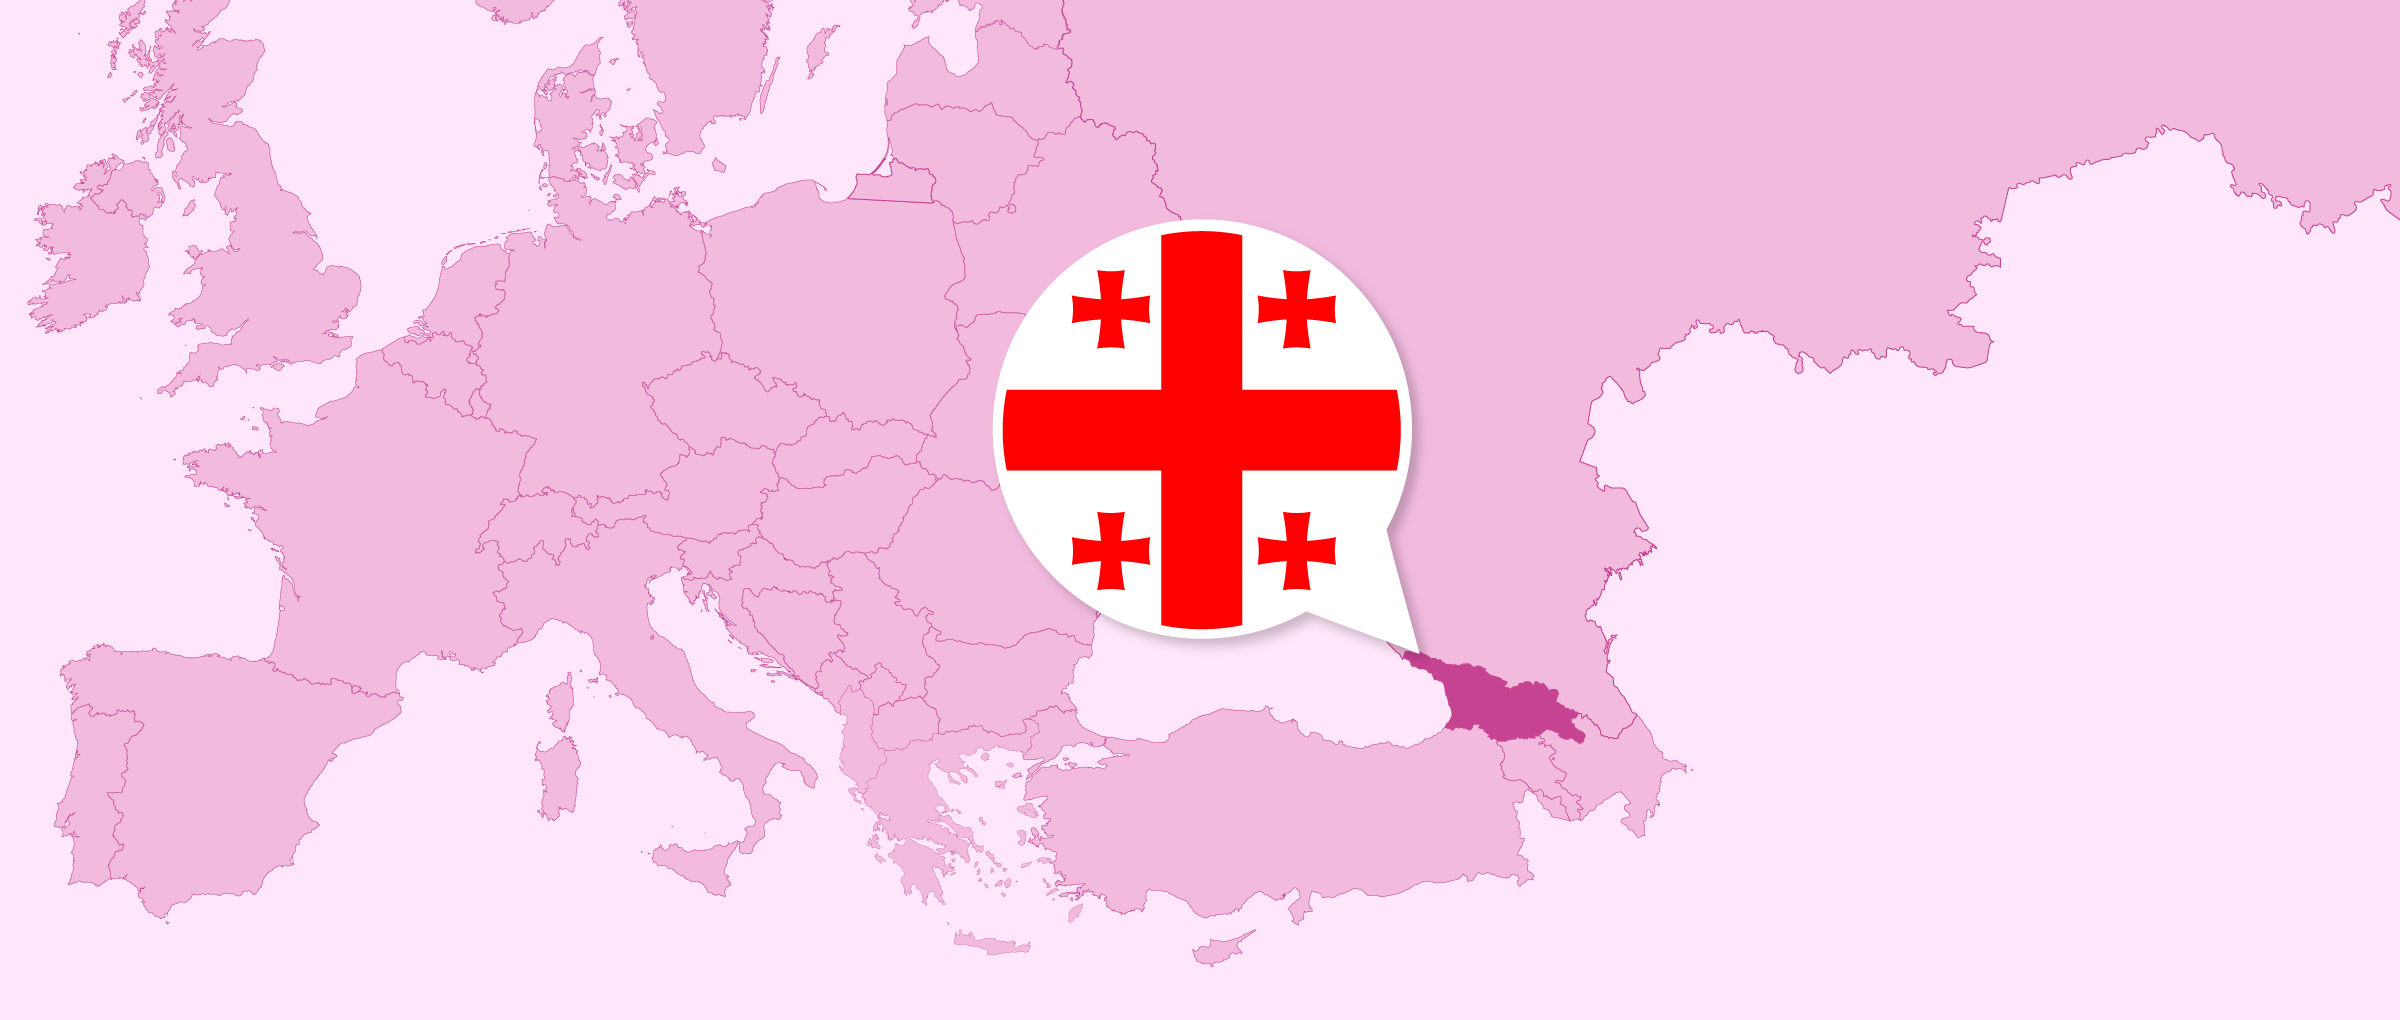 Location of Georgia in Europe